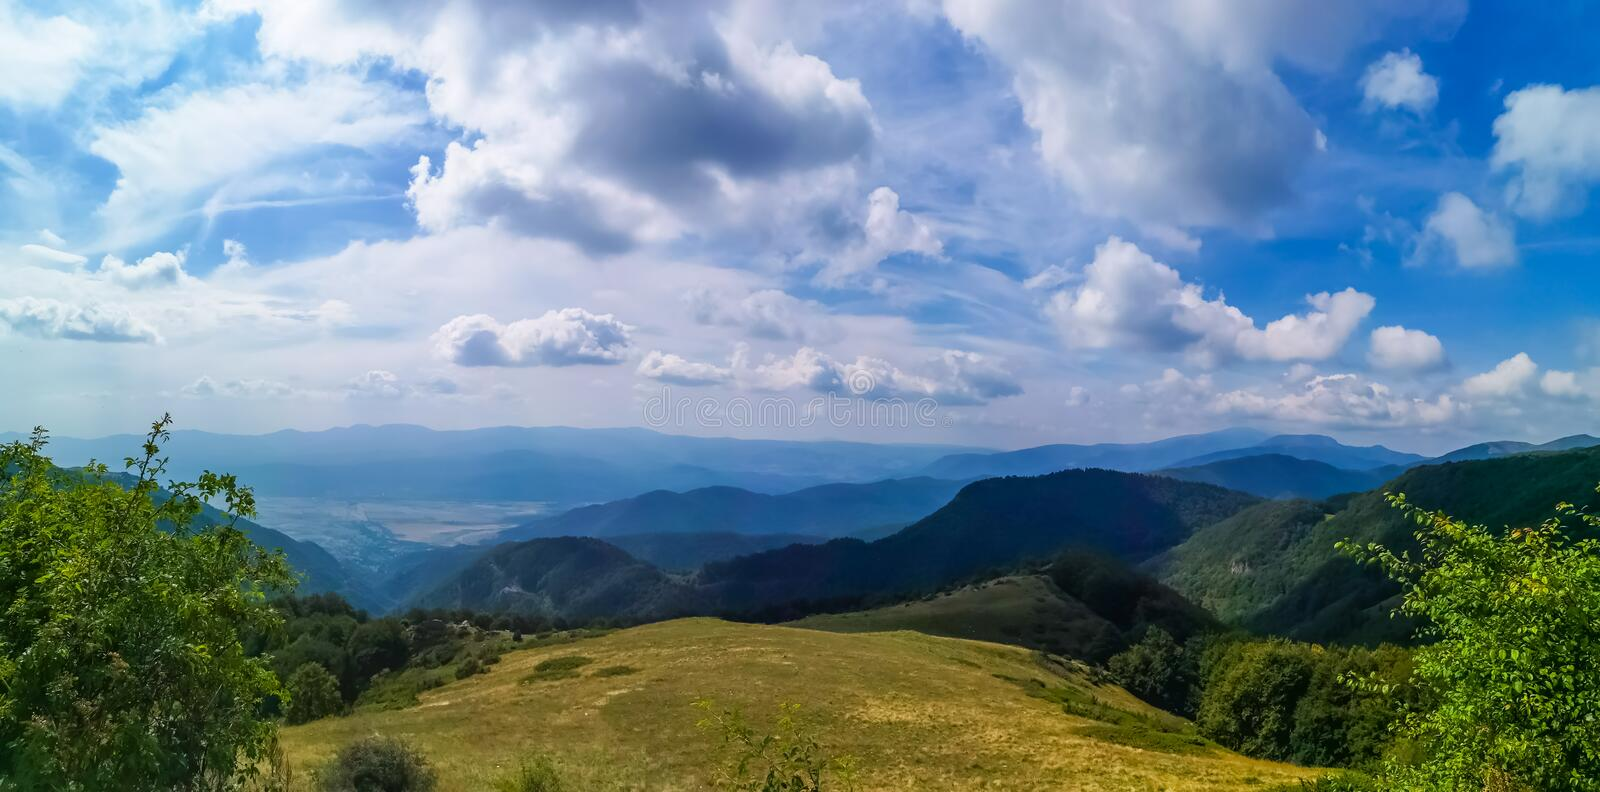 Mountain landscape with blue sky royalty free stock image